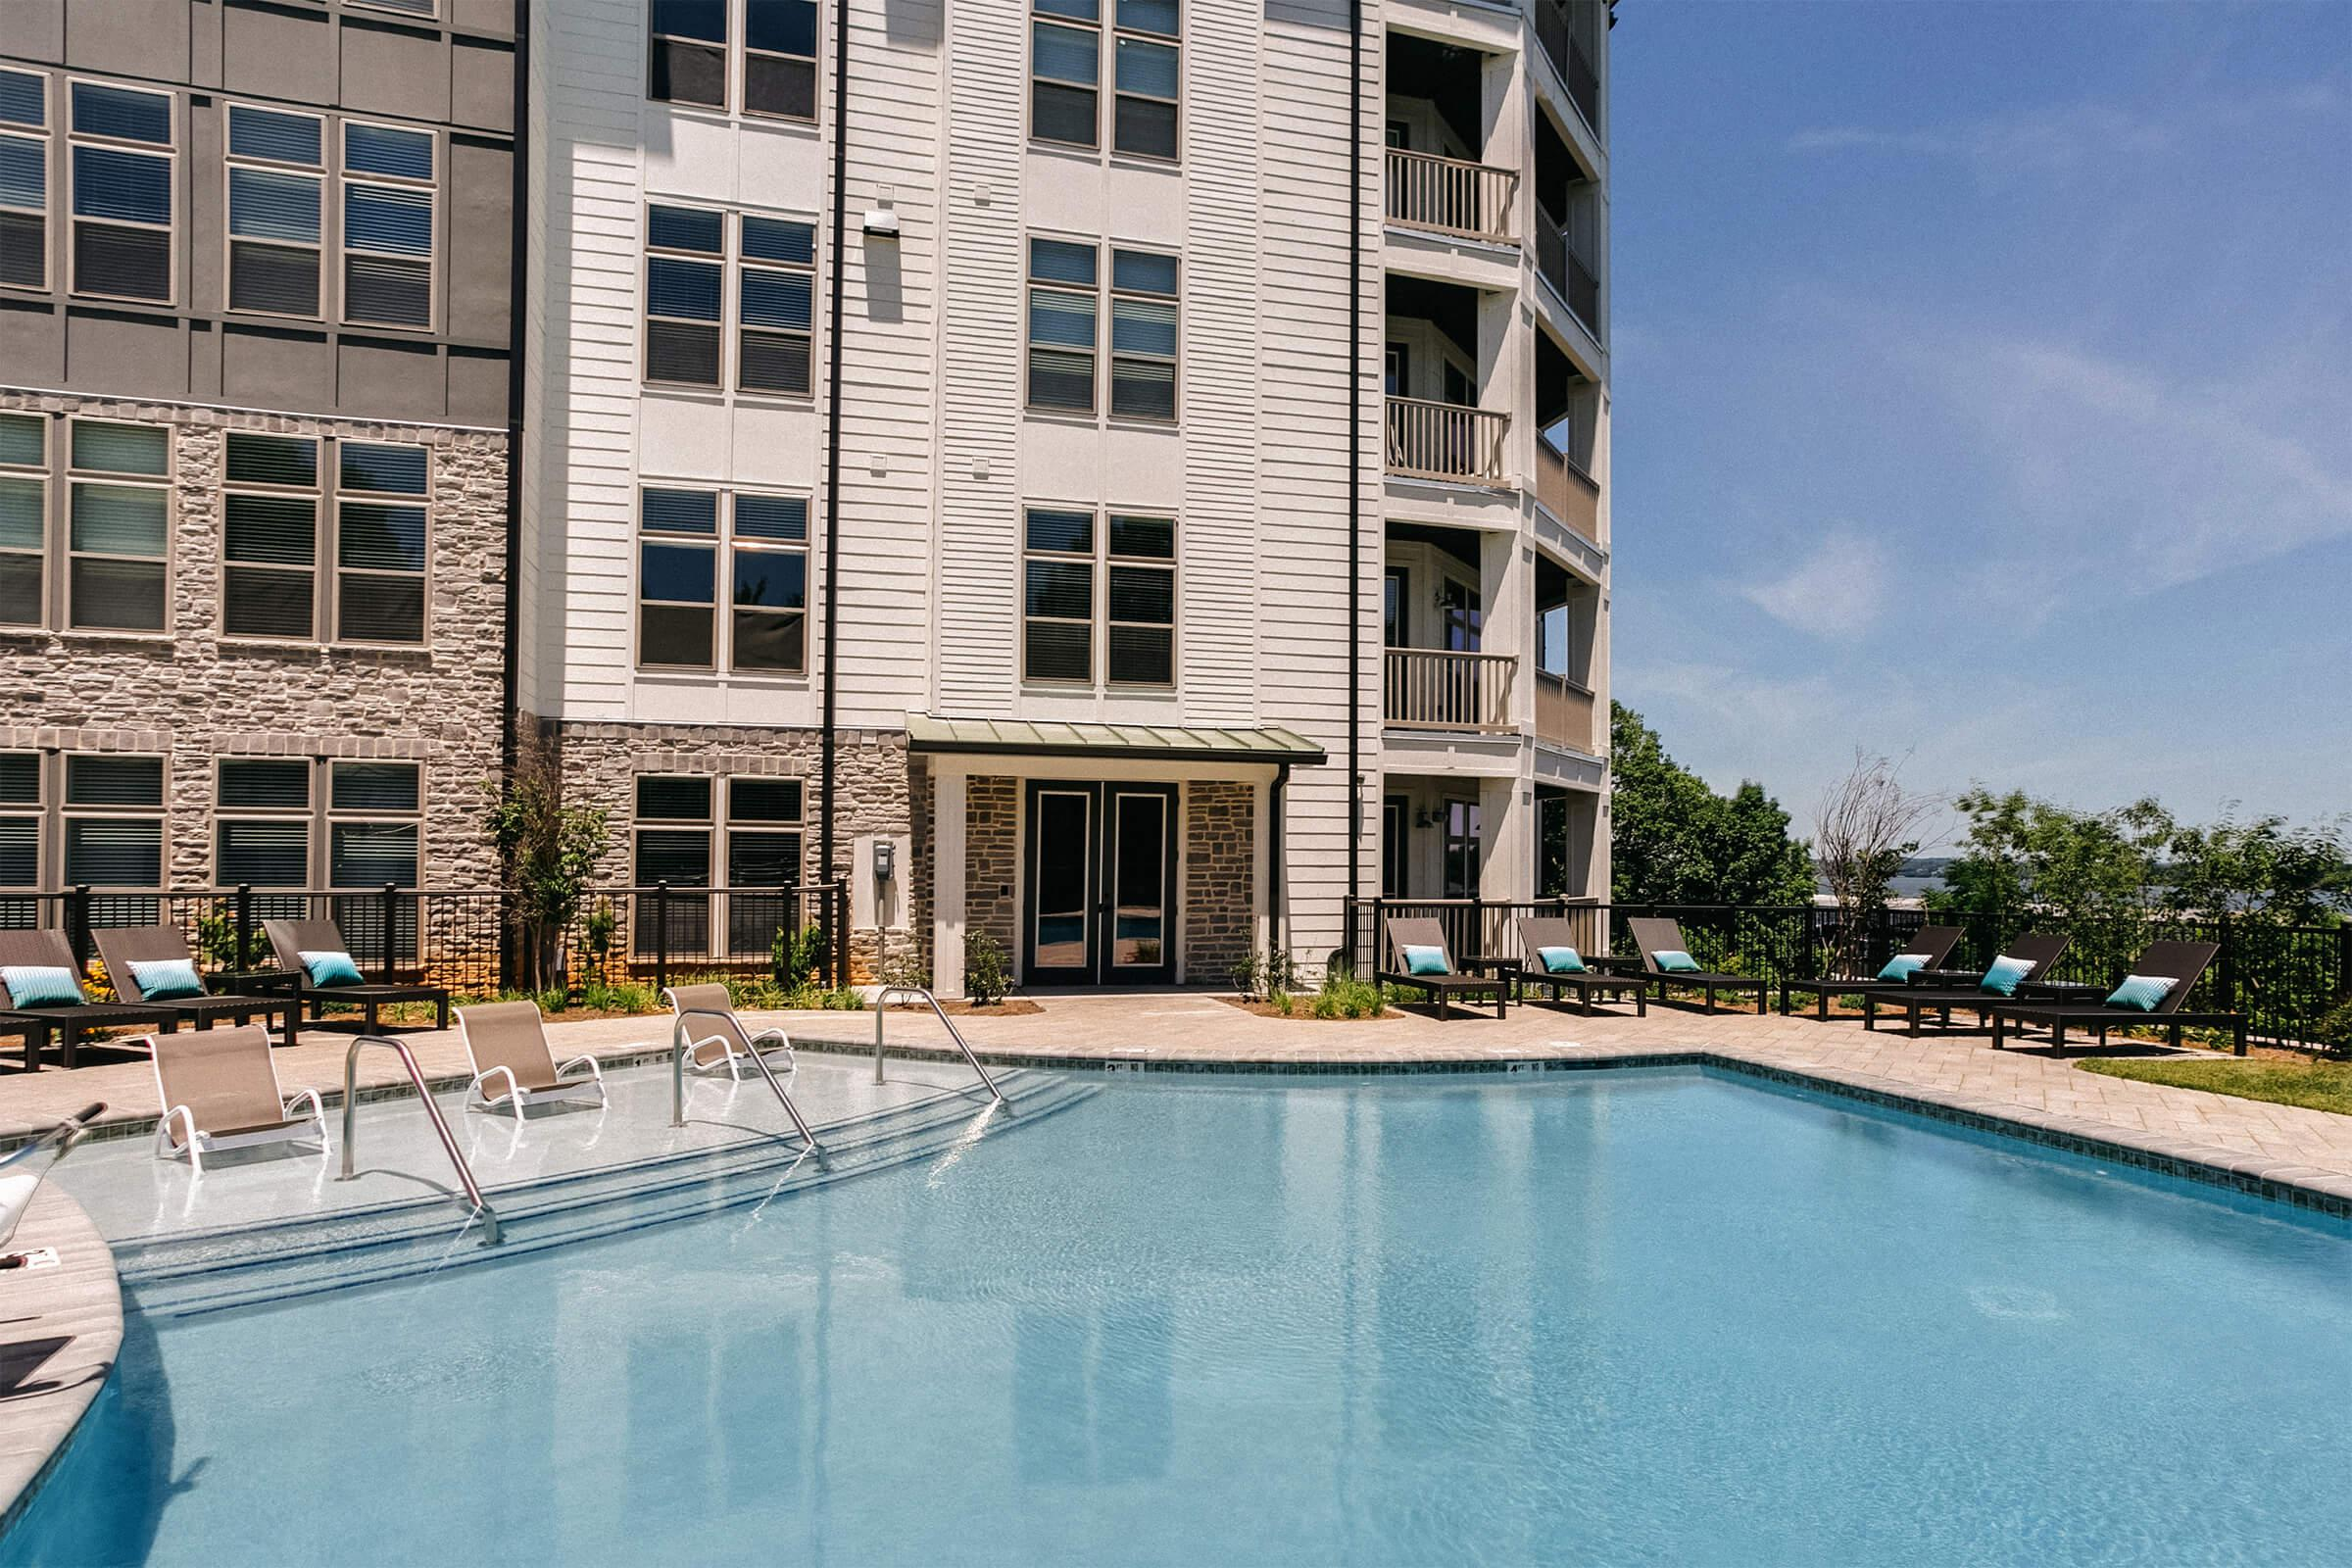 Relax pool side in Old Hickory, Tennessee